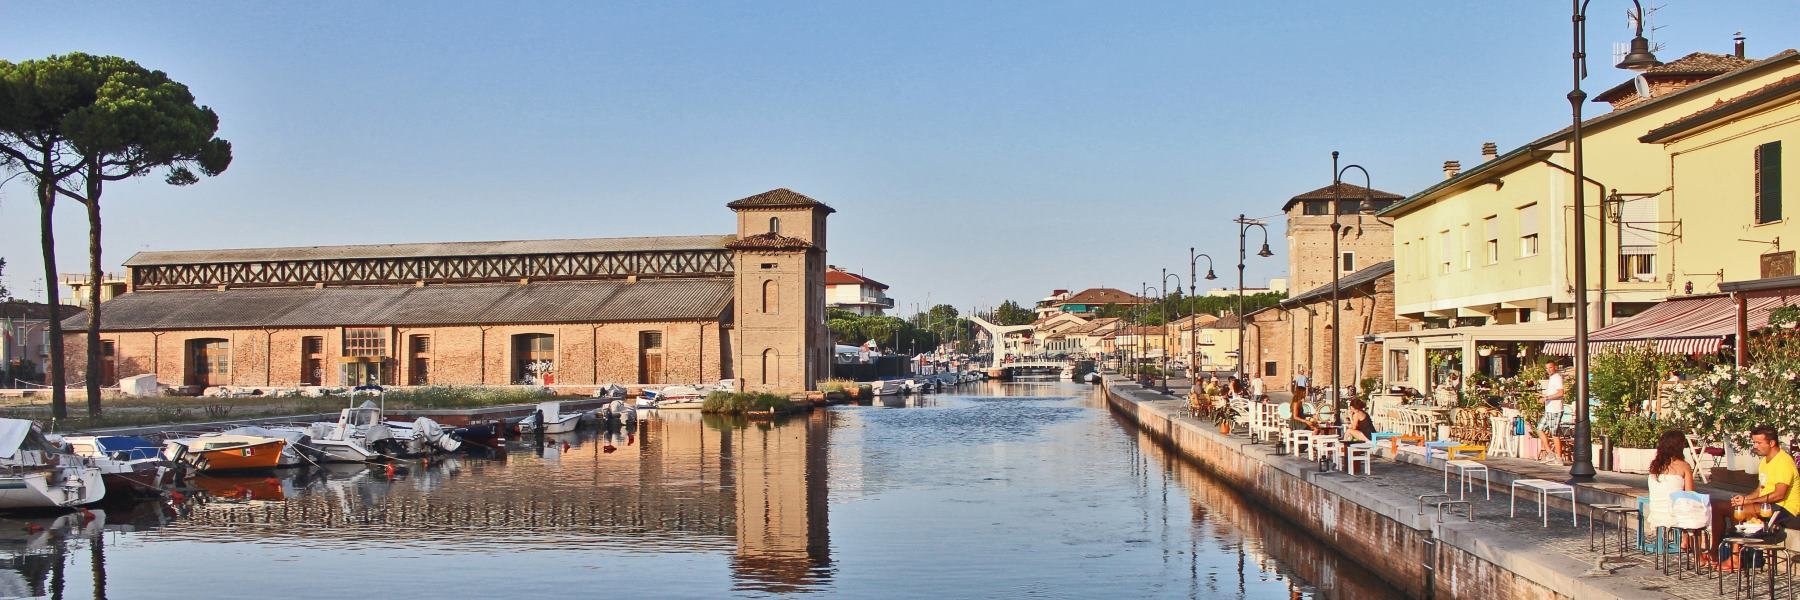 Borgo Marina - The Fishermen's Neighbourhood